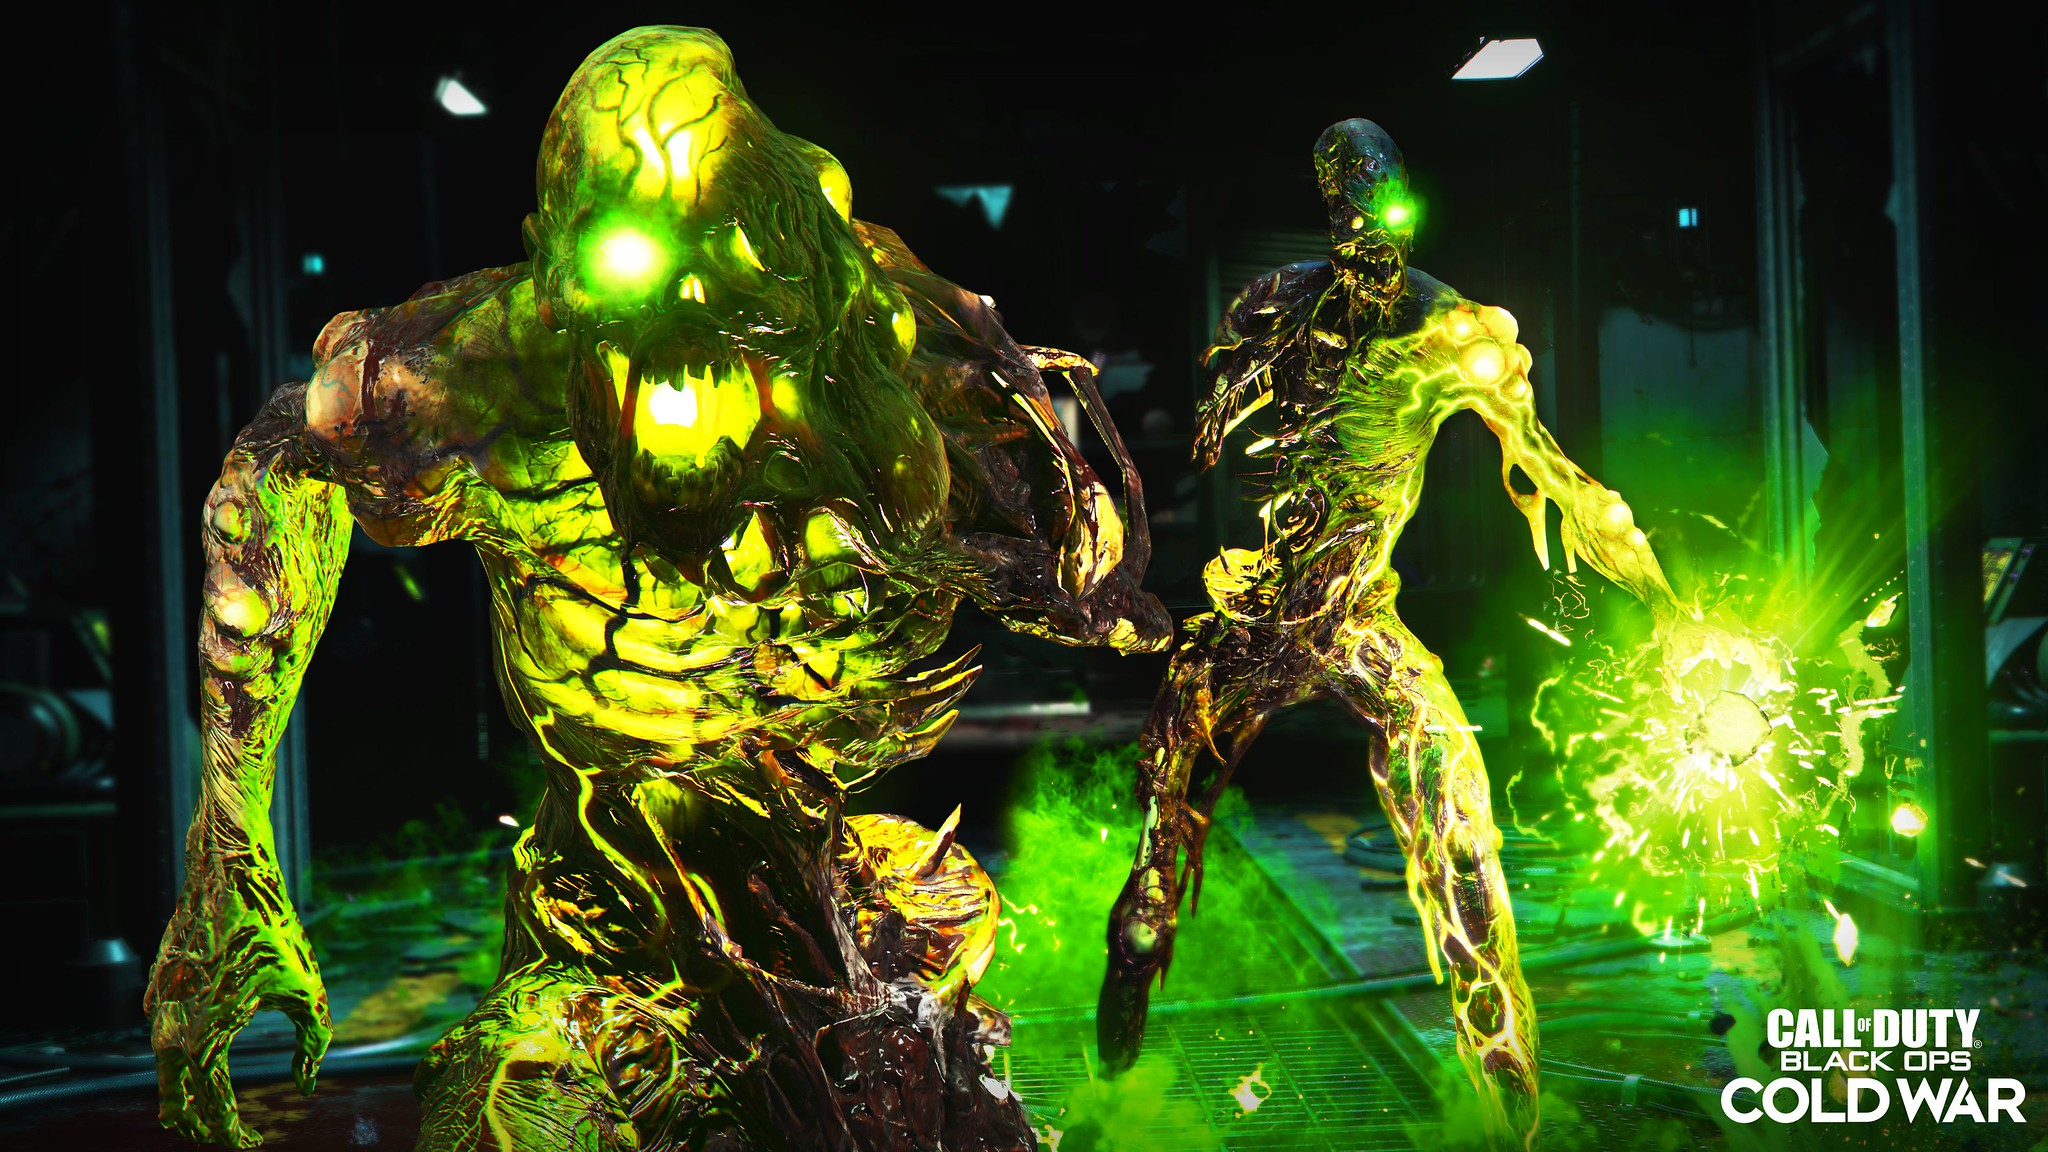 Call Of Duty Black Ops Cold War Zombies Has New Weapon Rarities And Equipment Gamesradar